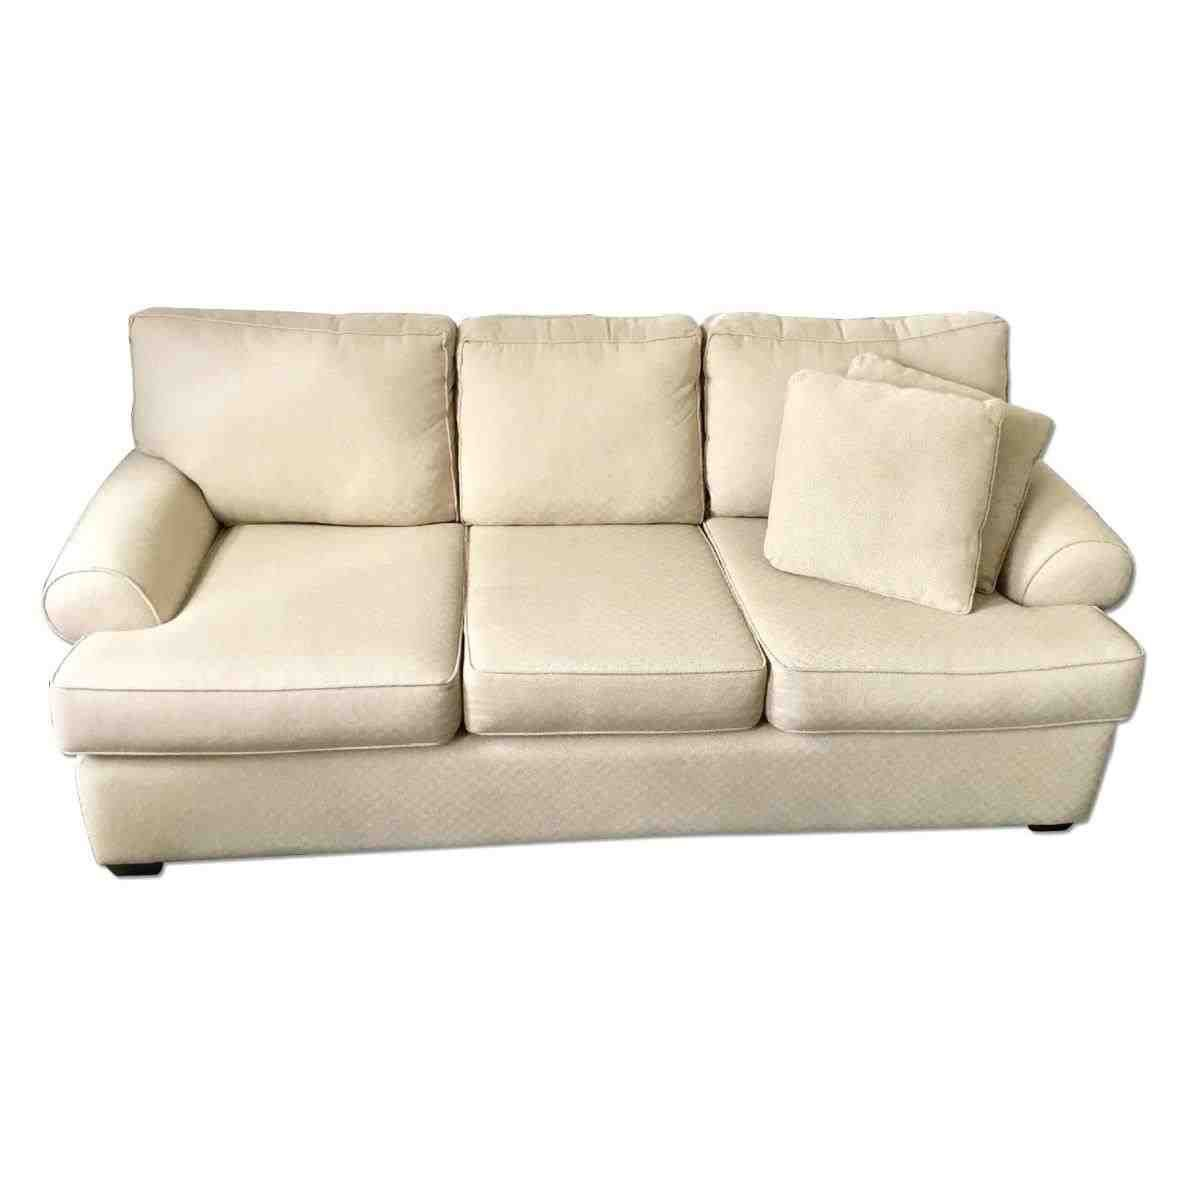 Sectionals For Curved Couches Leather Oversized Sectional Furniture Couch White Sofa Uk Full Size Plush